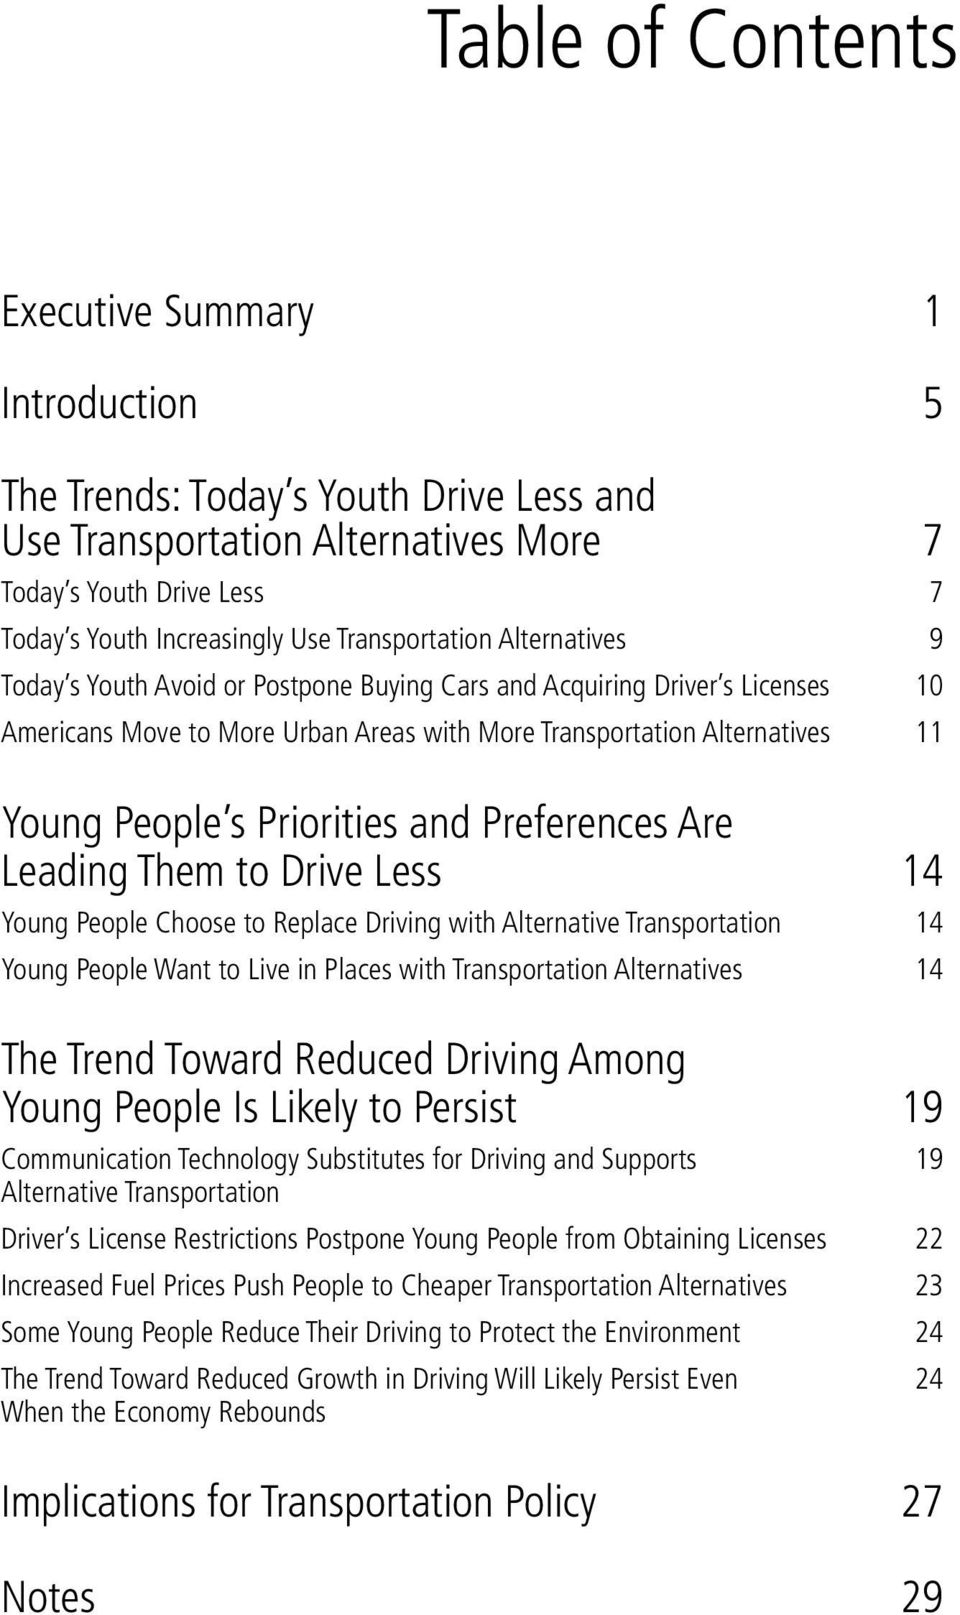 Priorities and Preferences Are Leading Them to Drive Less 14 Young People Choose to Replace Driving with Alternative Transportation 14 Young People Want to Live in Places with Transportation